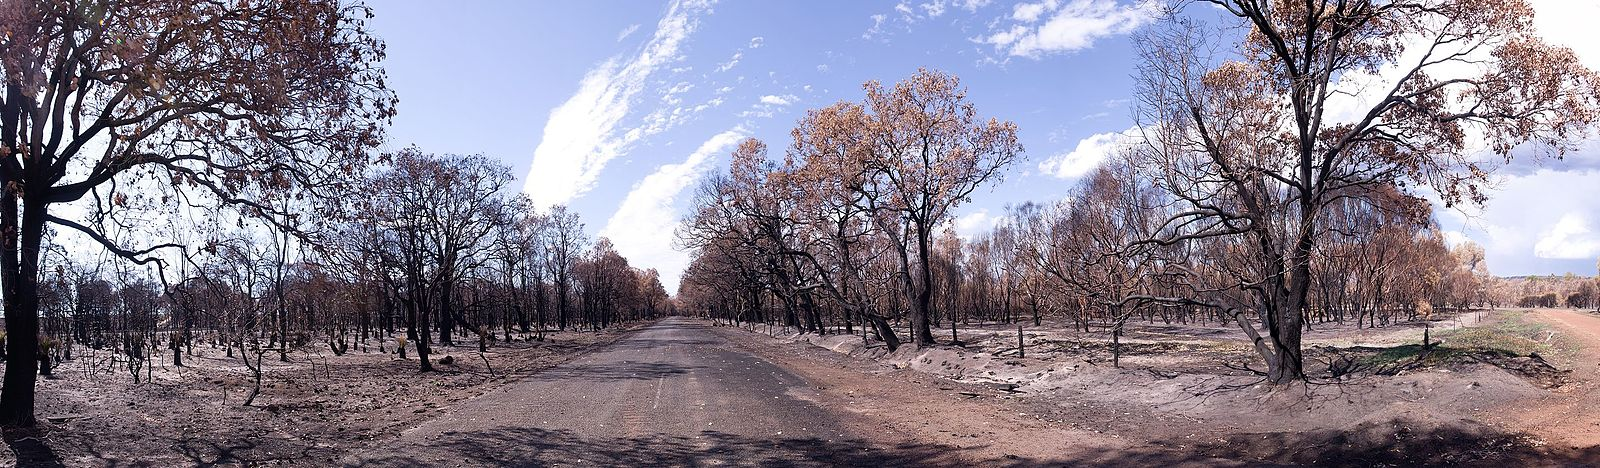 a central road leading nto the distance with blackened remains of bush land following a fire